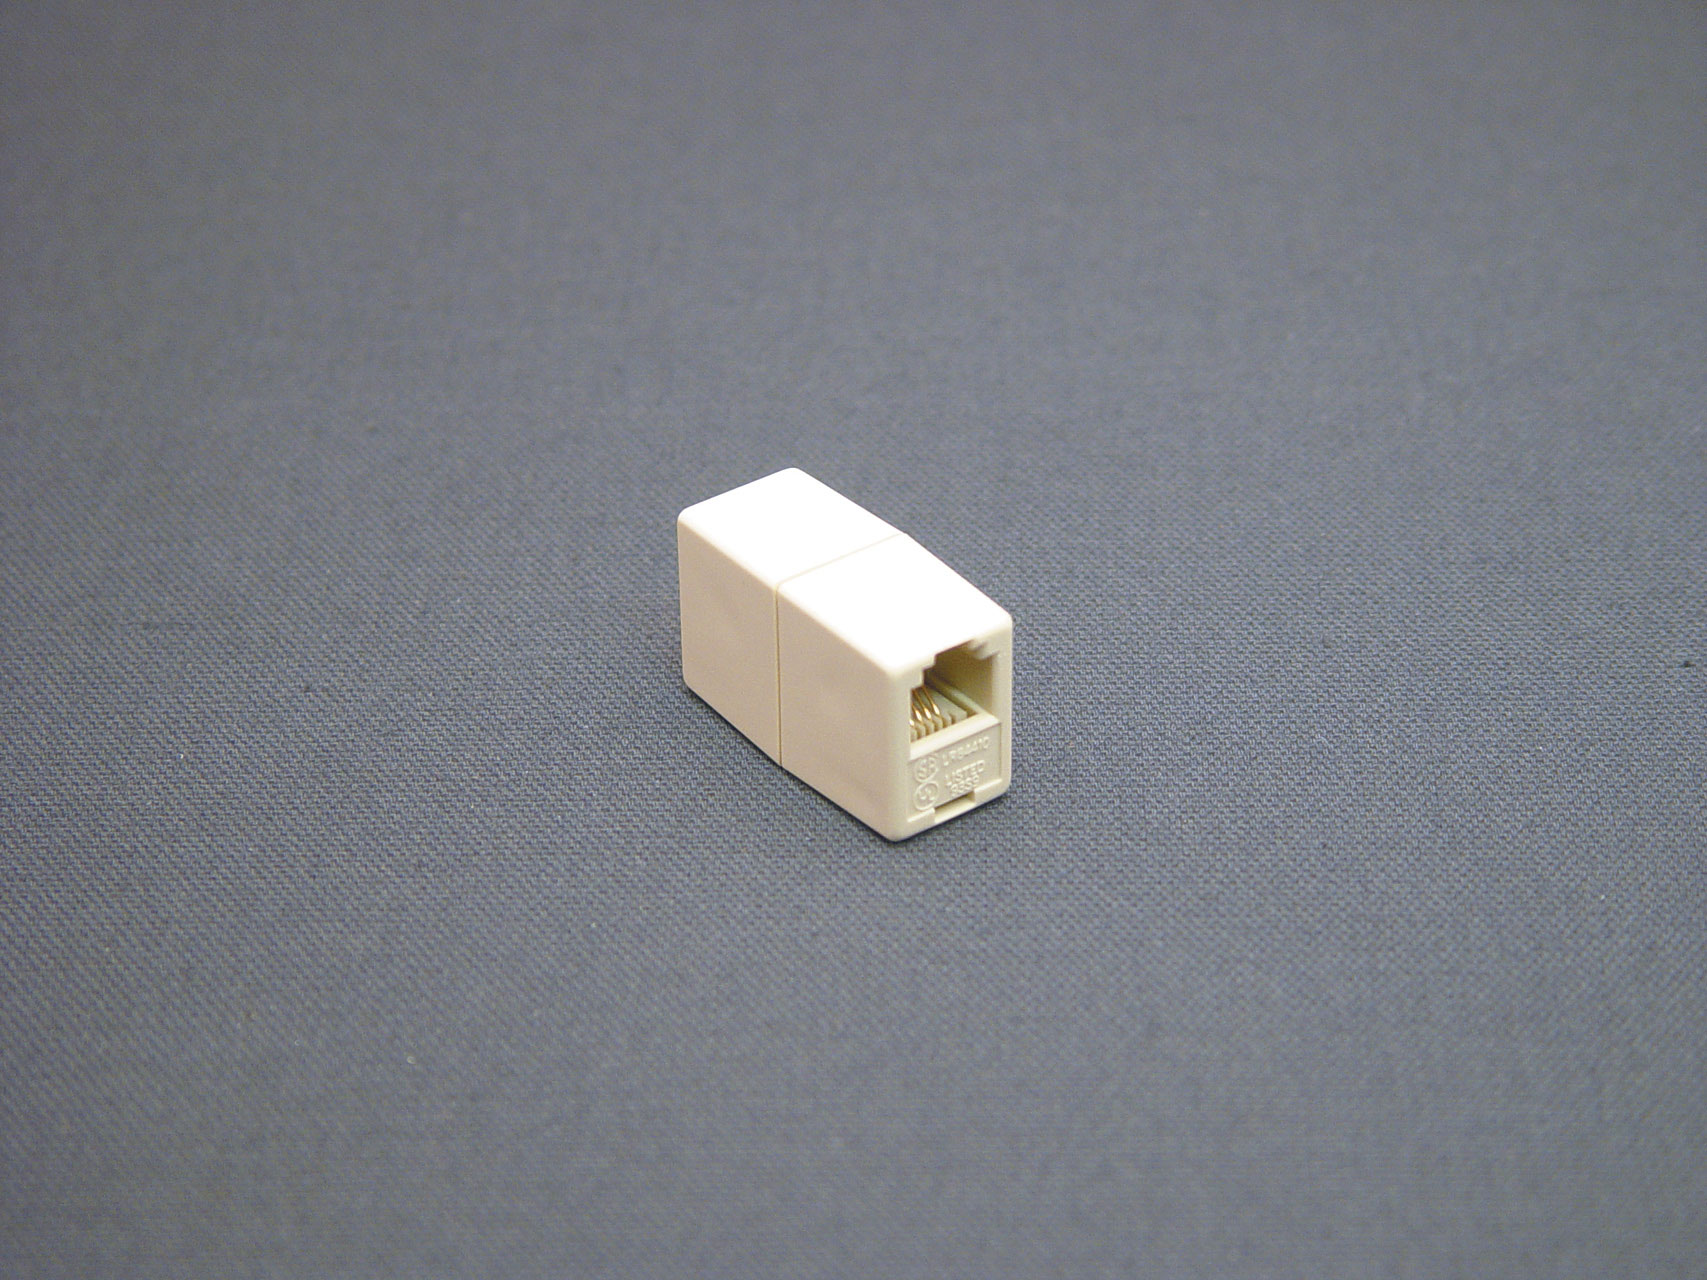 COUPLER, MODULAR, SINGLE 4 COND, PIN 2 T